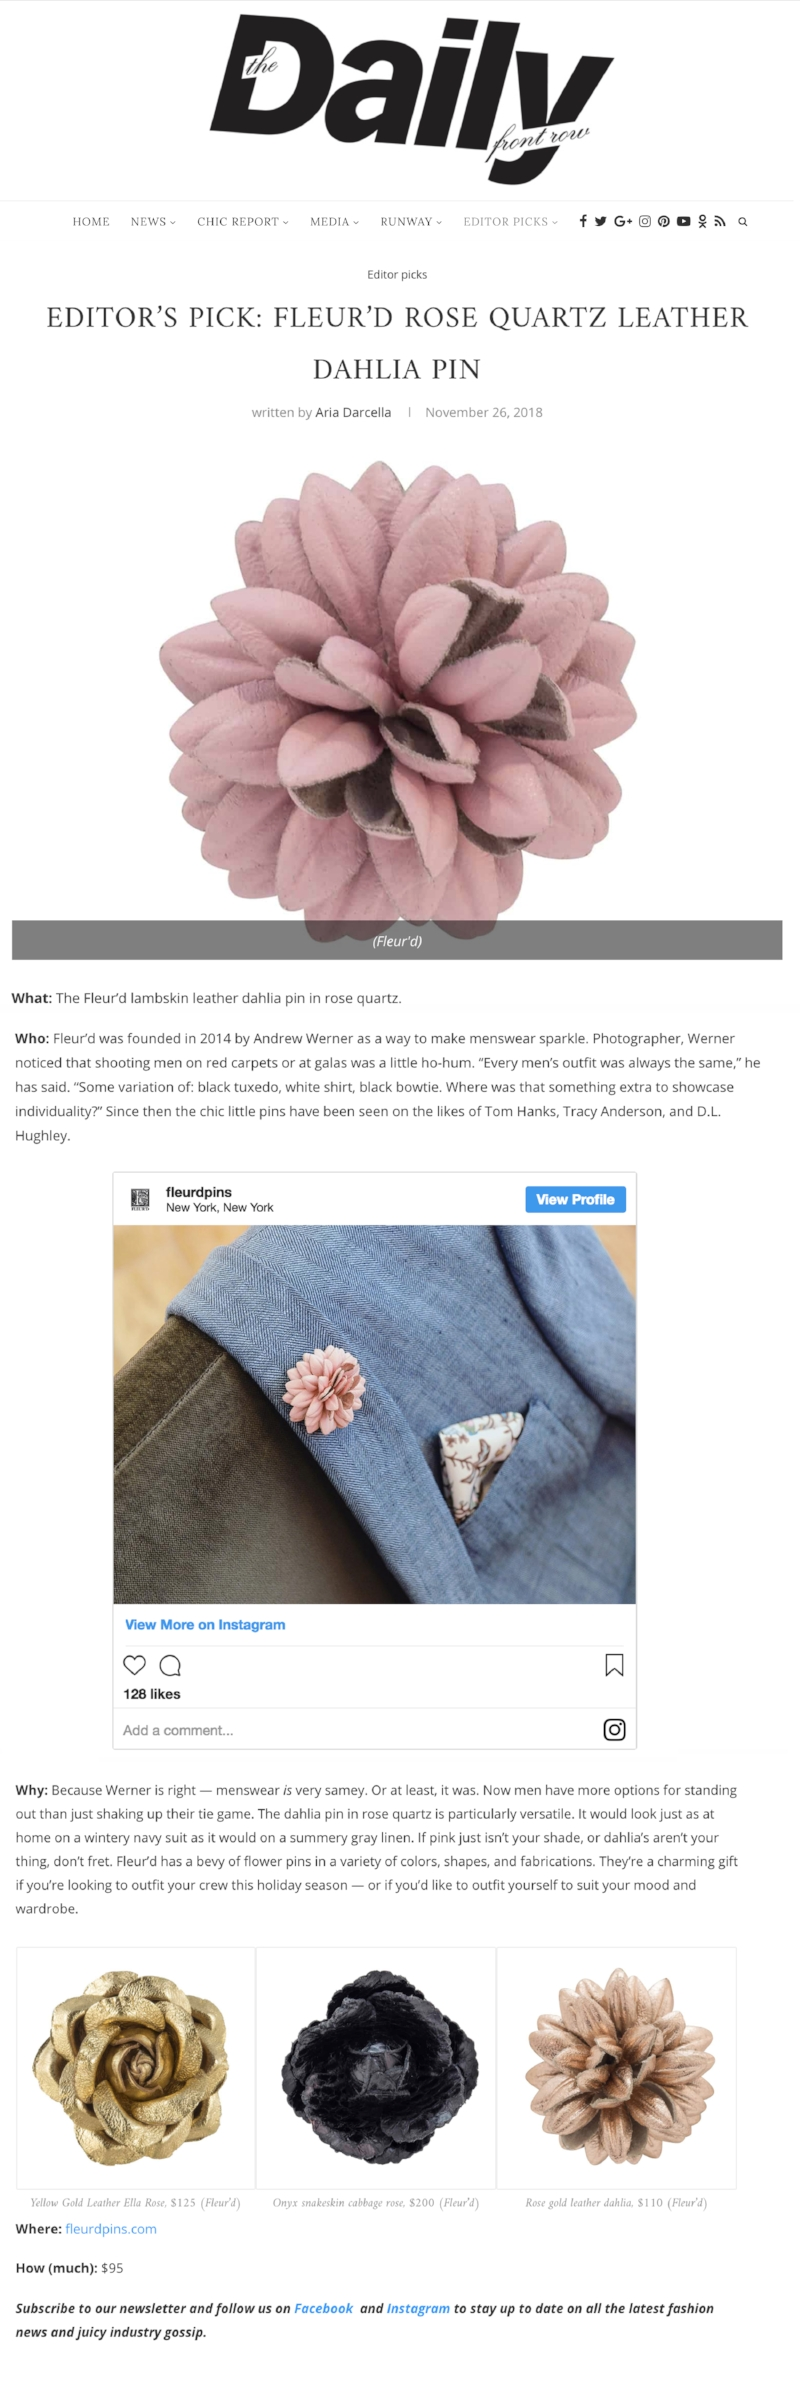 Daily Front Row Editor's Pick 11.26.18 - Fleur'd Pins Rose Quartz Leather Dahlia.jpg